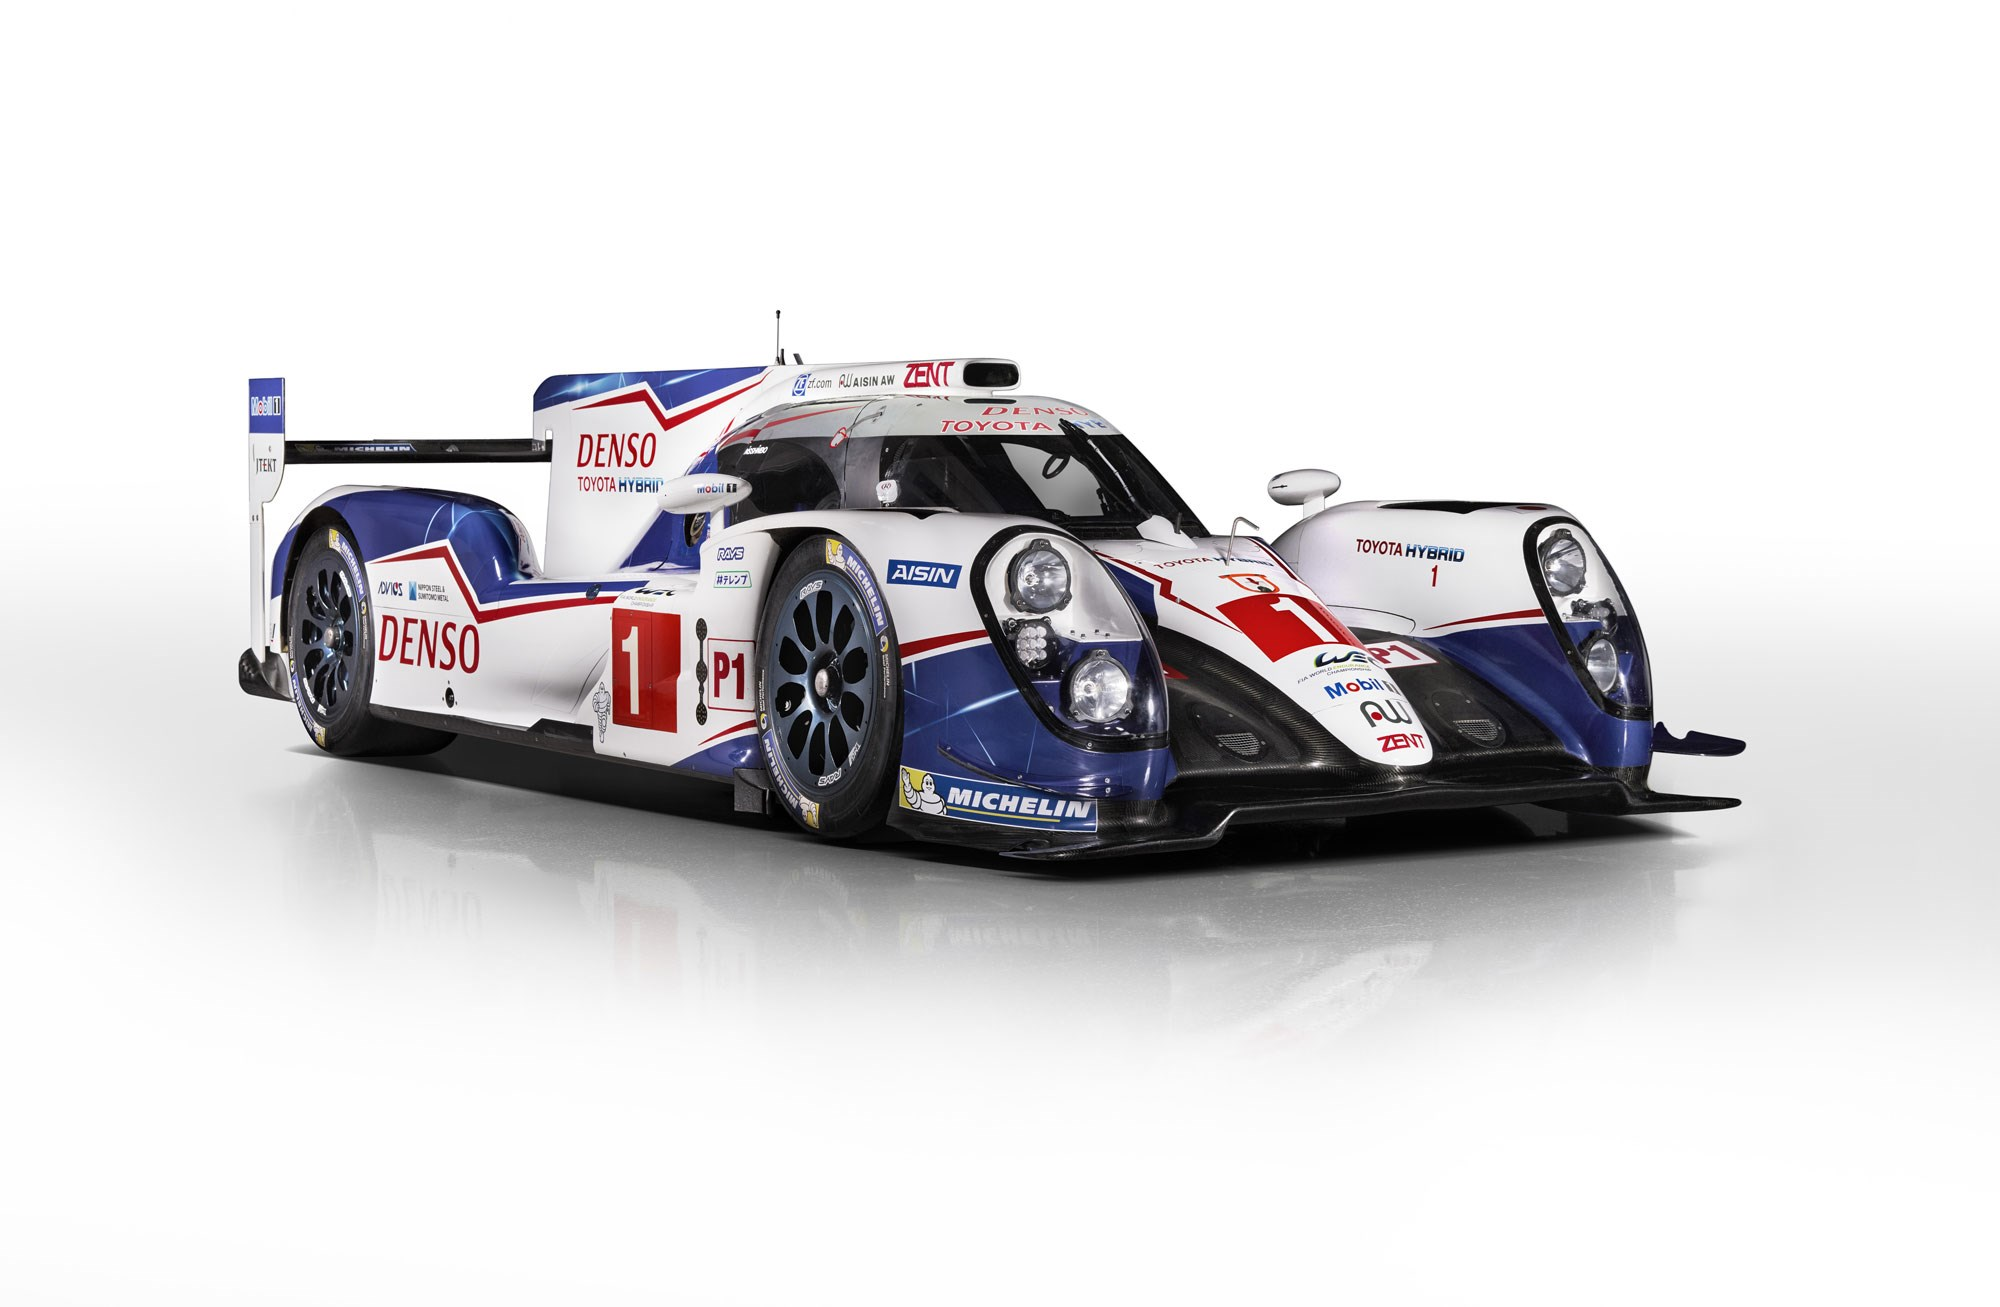 contenders ready porsche and toyota s 2015 le mans racers revealed by car magazine. Black Bedroom Furniture Sets. Home Design Ideas